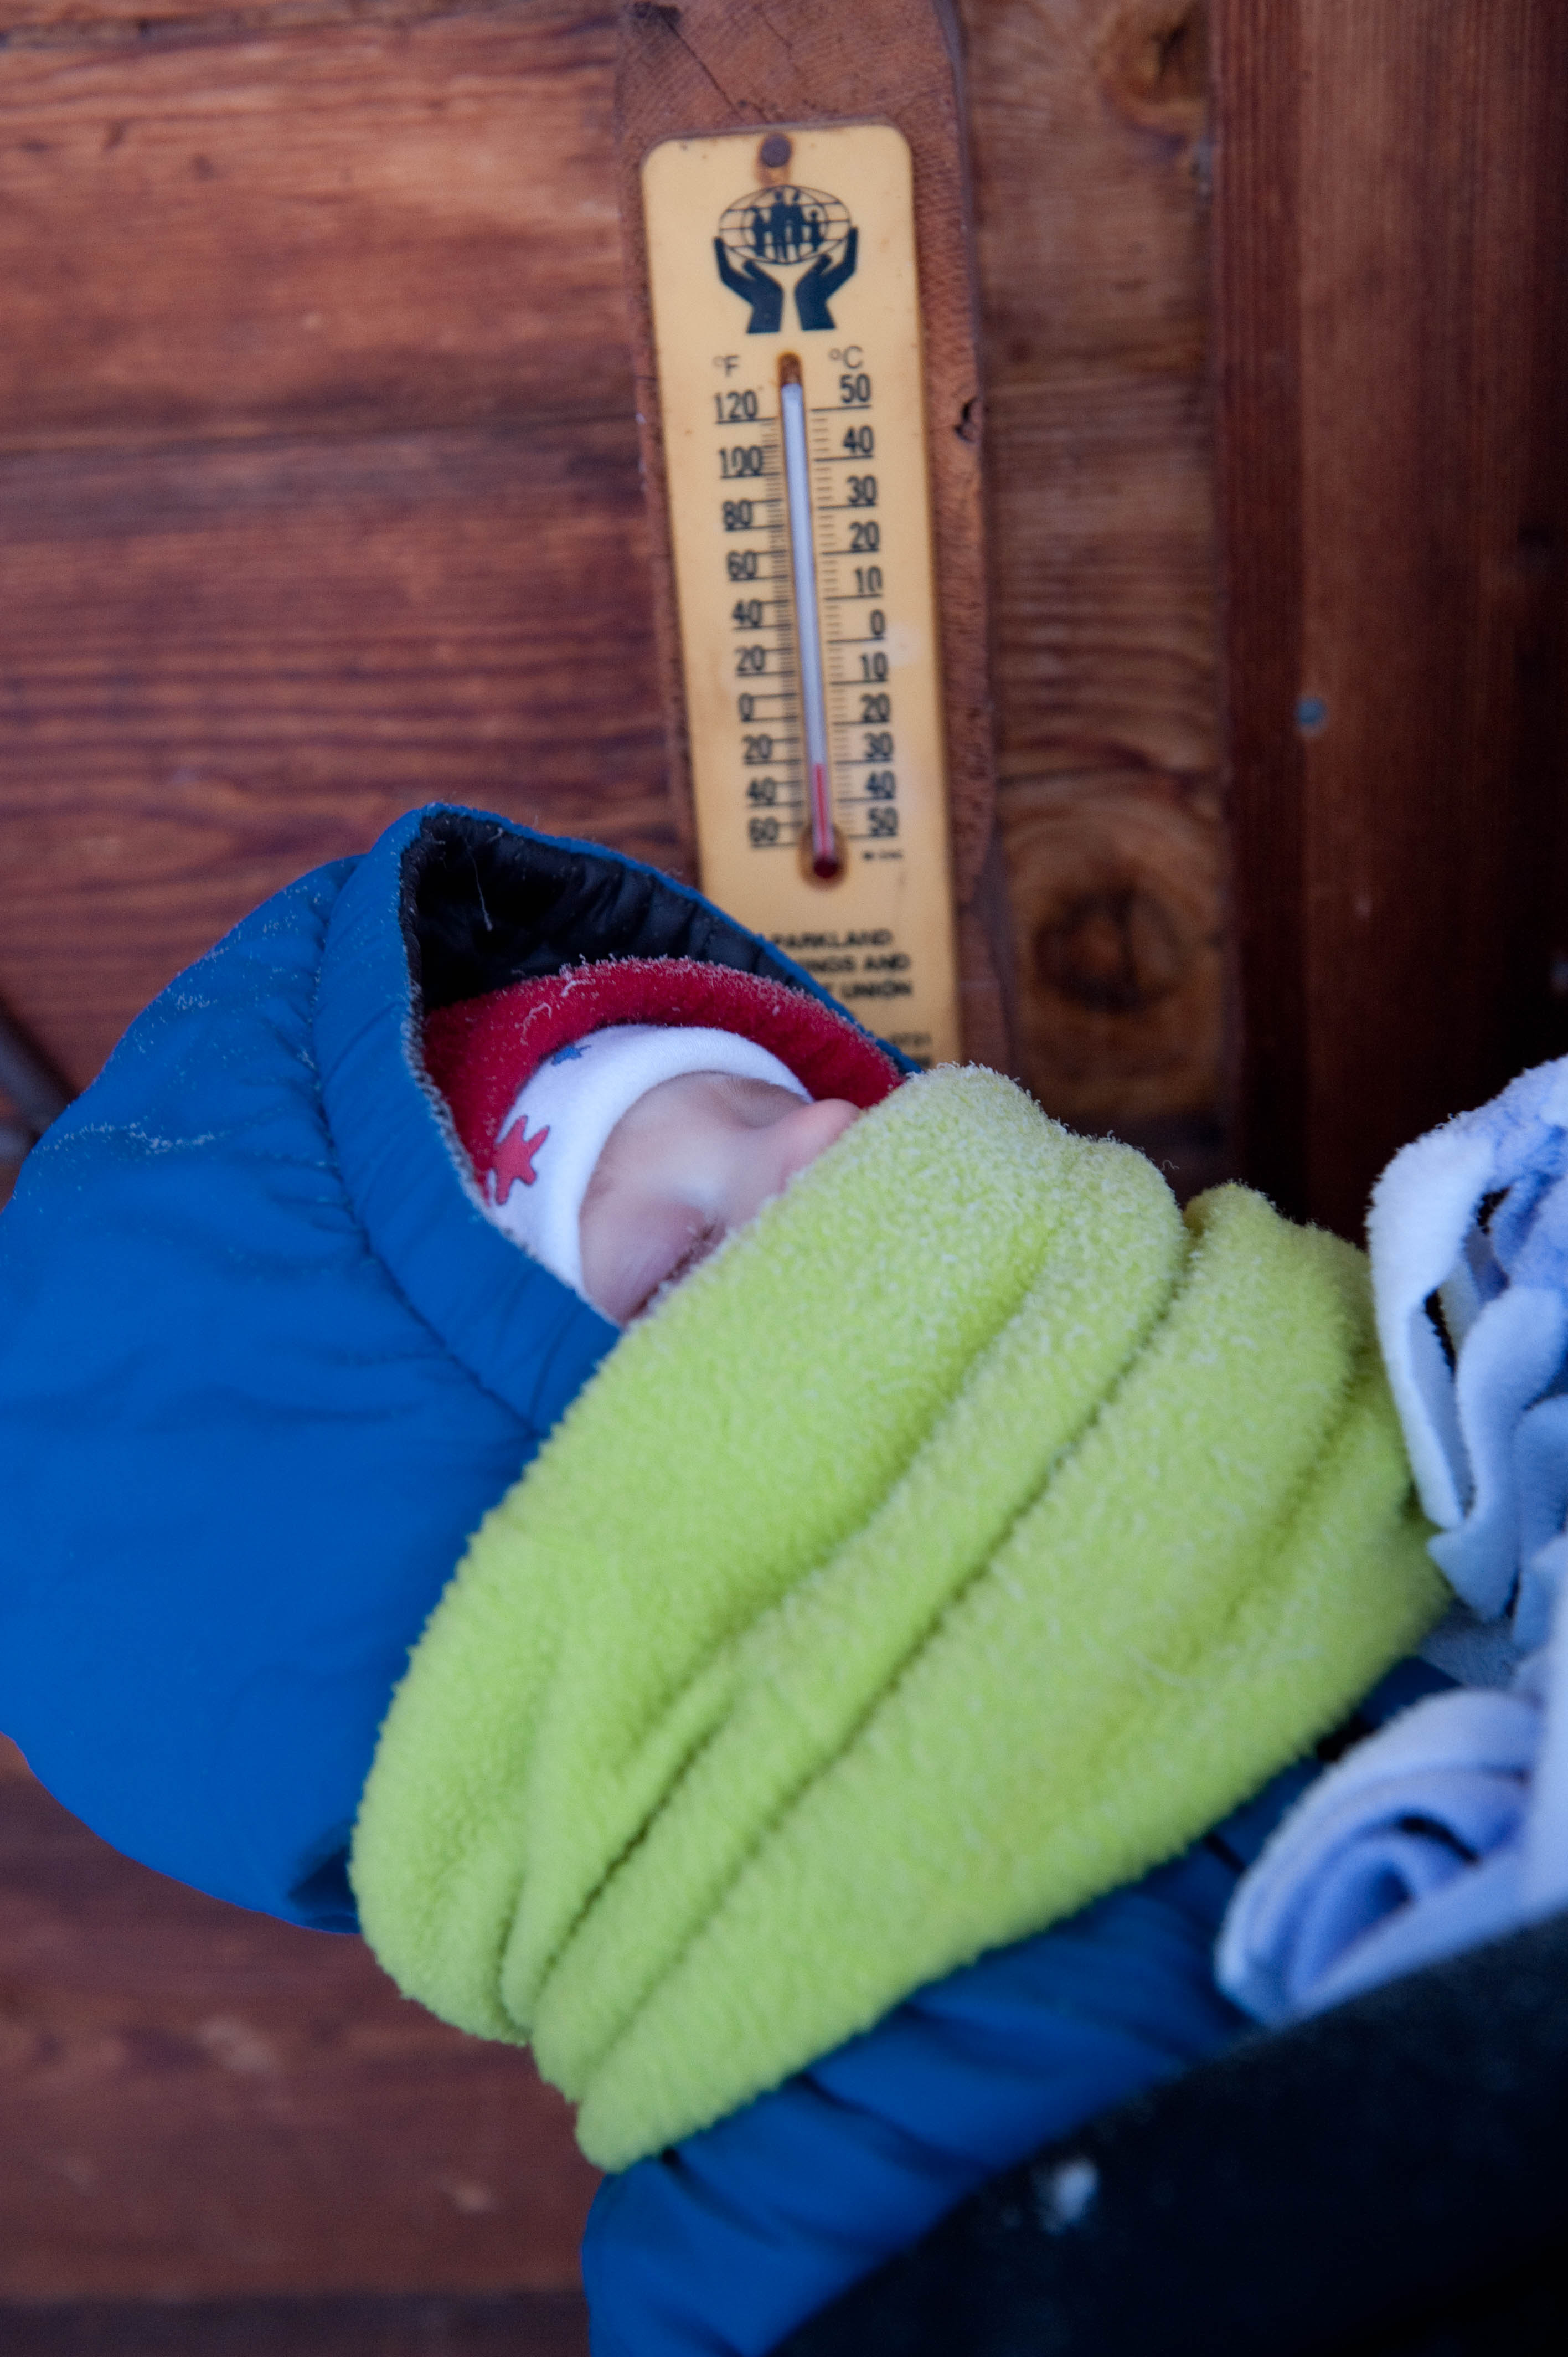 Yes, the thermometer says -32ºC next to that 7-month-old